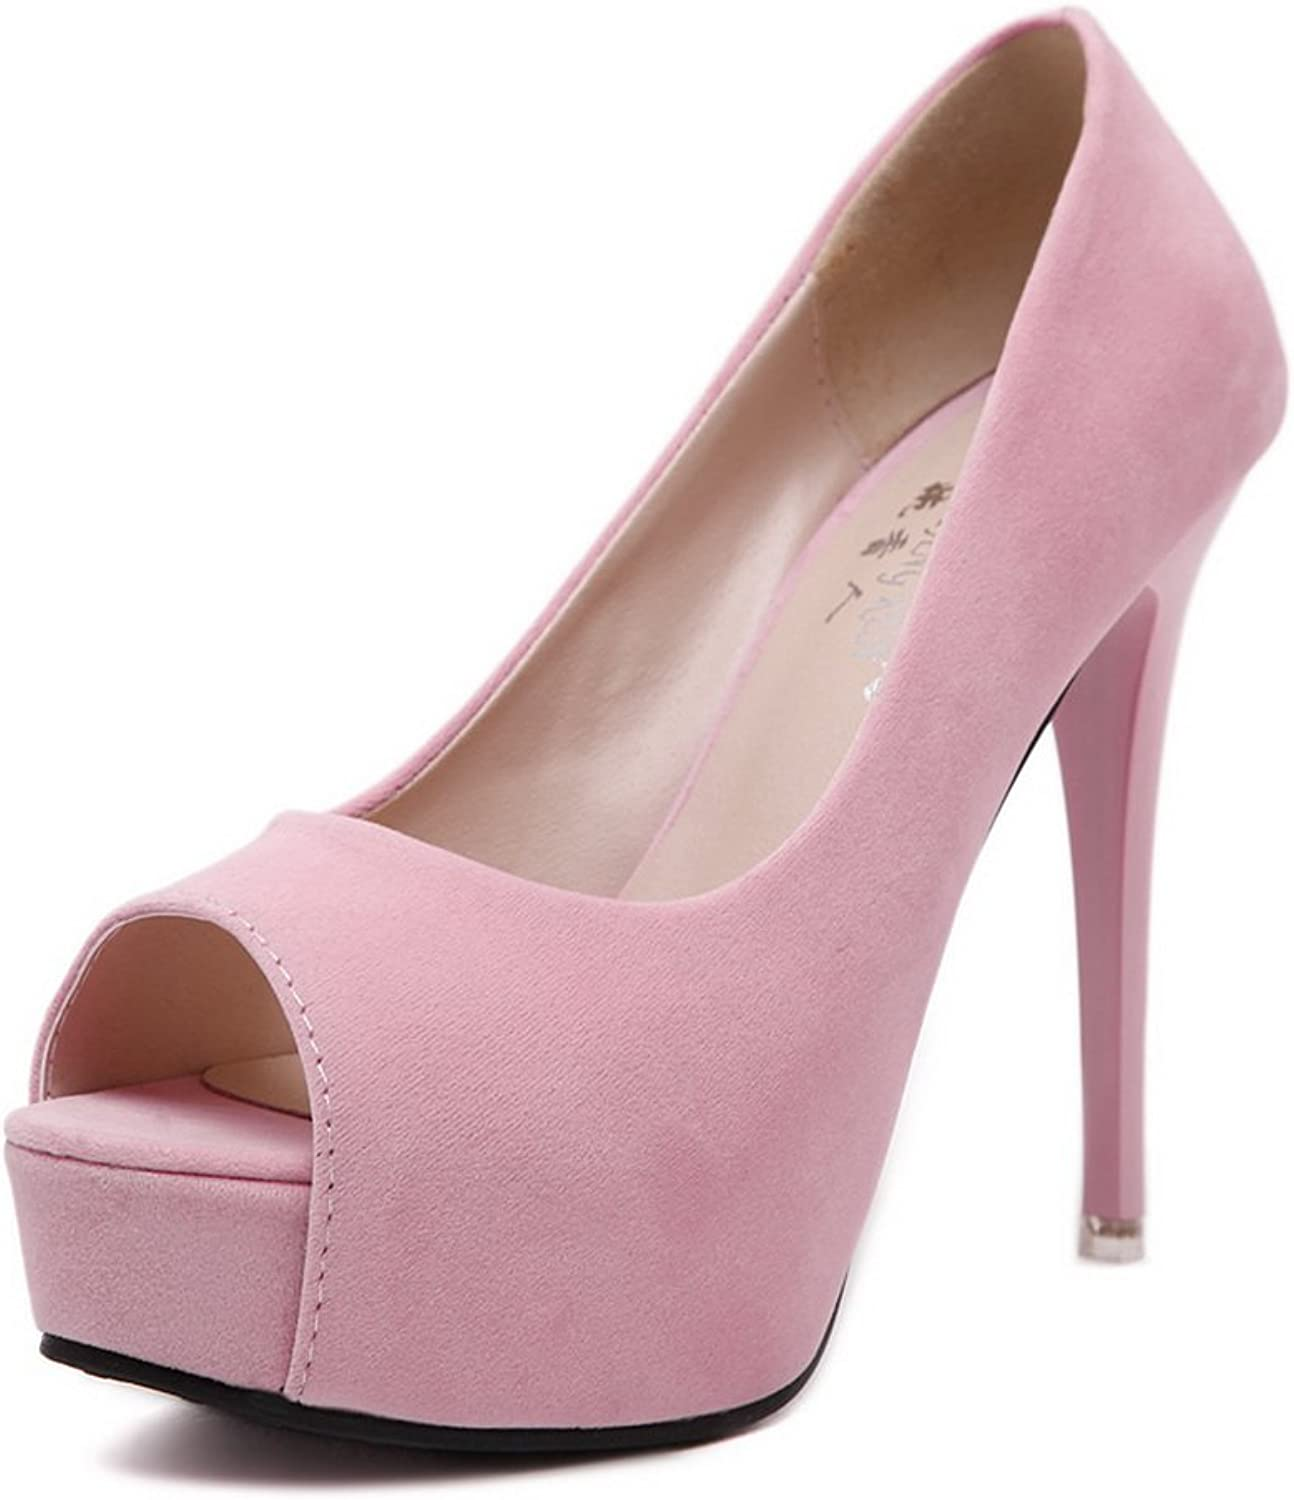 1TO9 Womens Spikes Stilettos Platform Peep-Toe Pink Suede Pumps shoes - 7 B(M) US